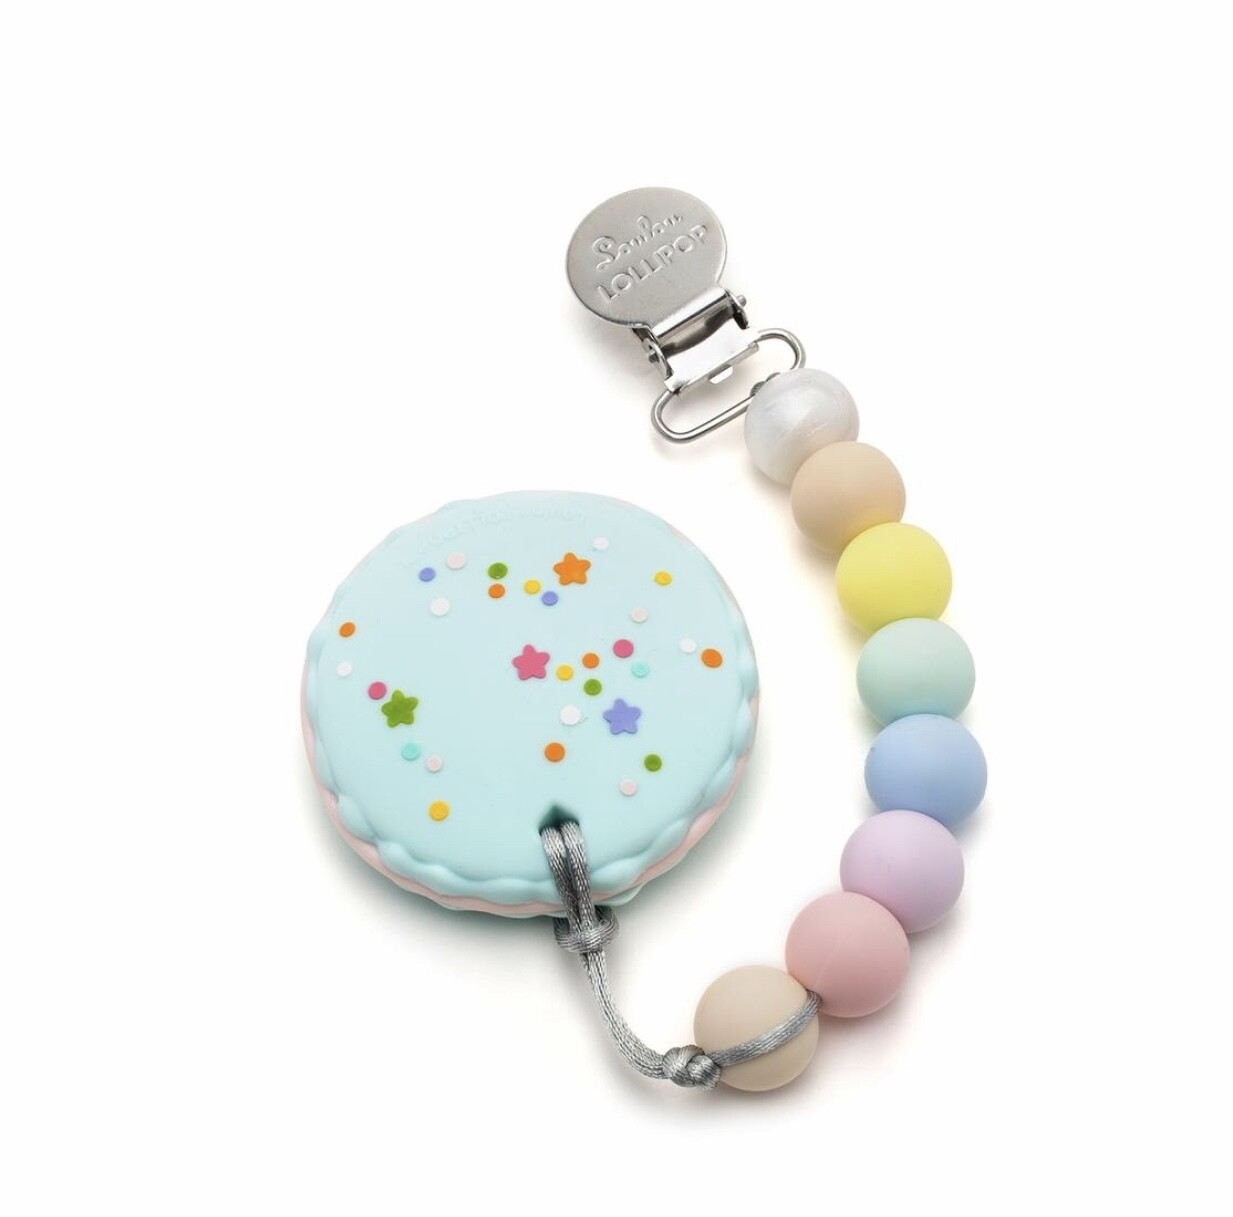 Macaron Silicone Teether Holder Set - Cotton Candy